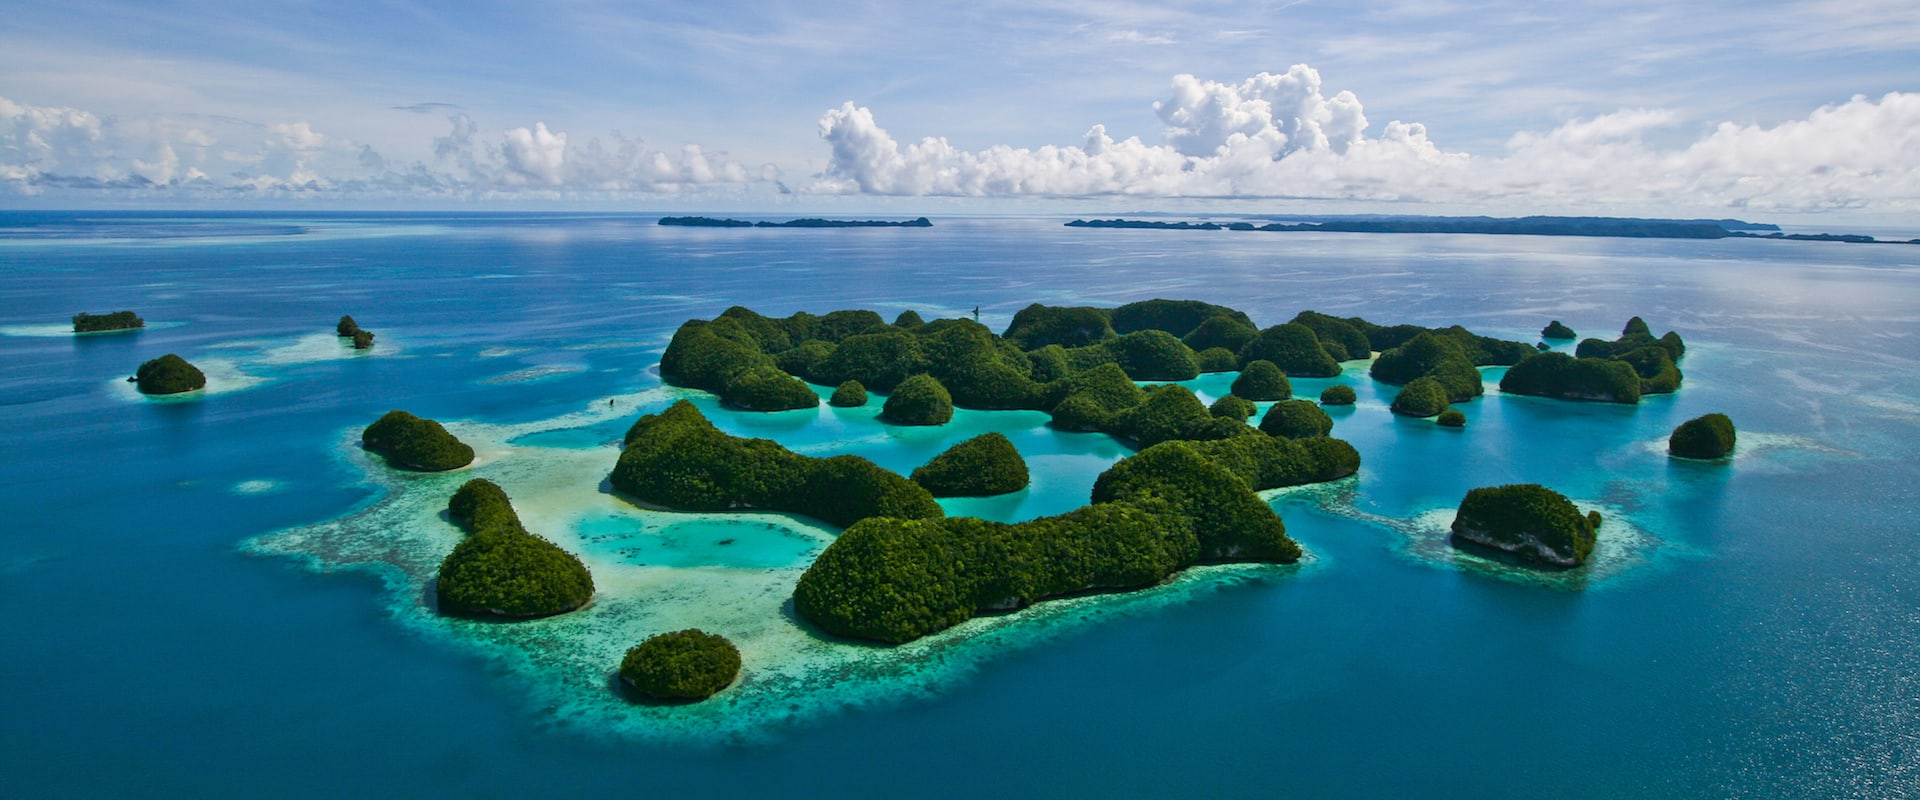 Palau Liveaboard Diving